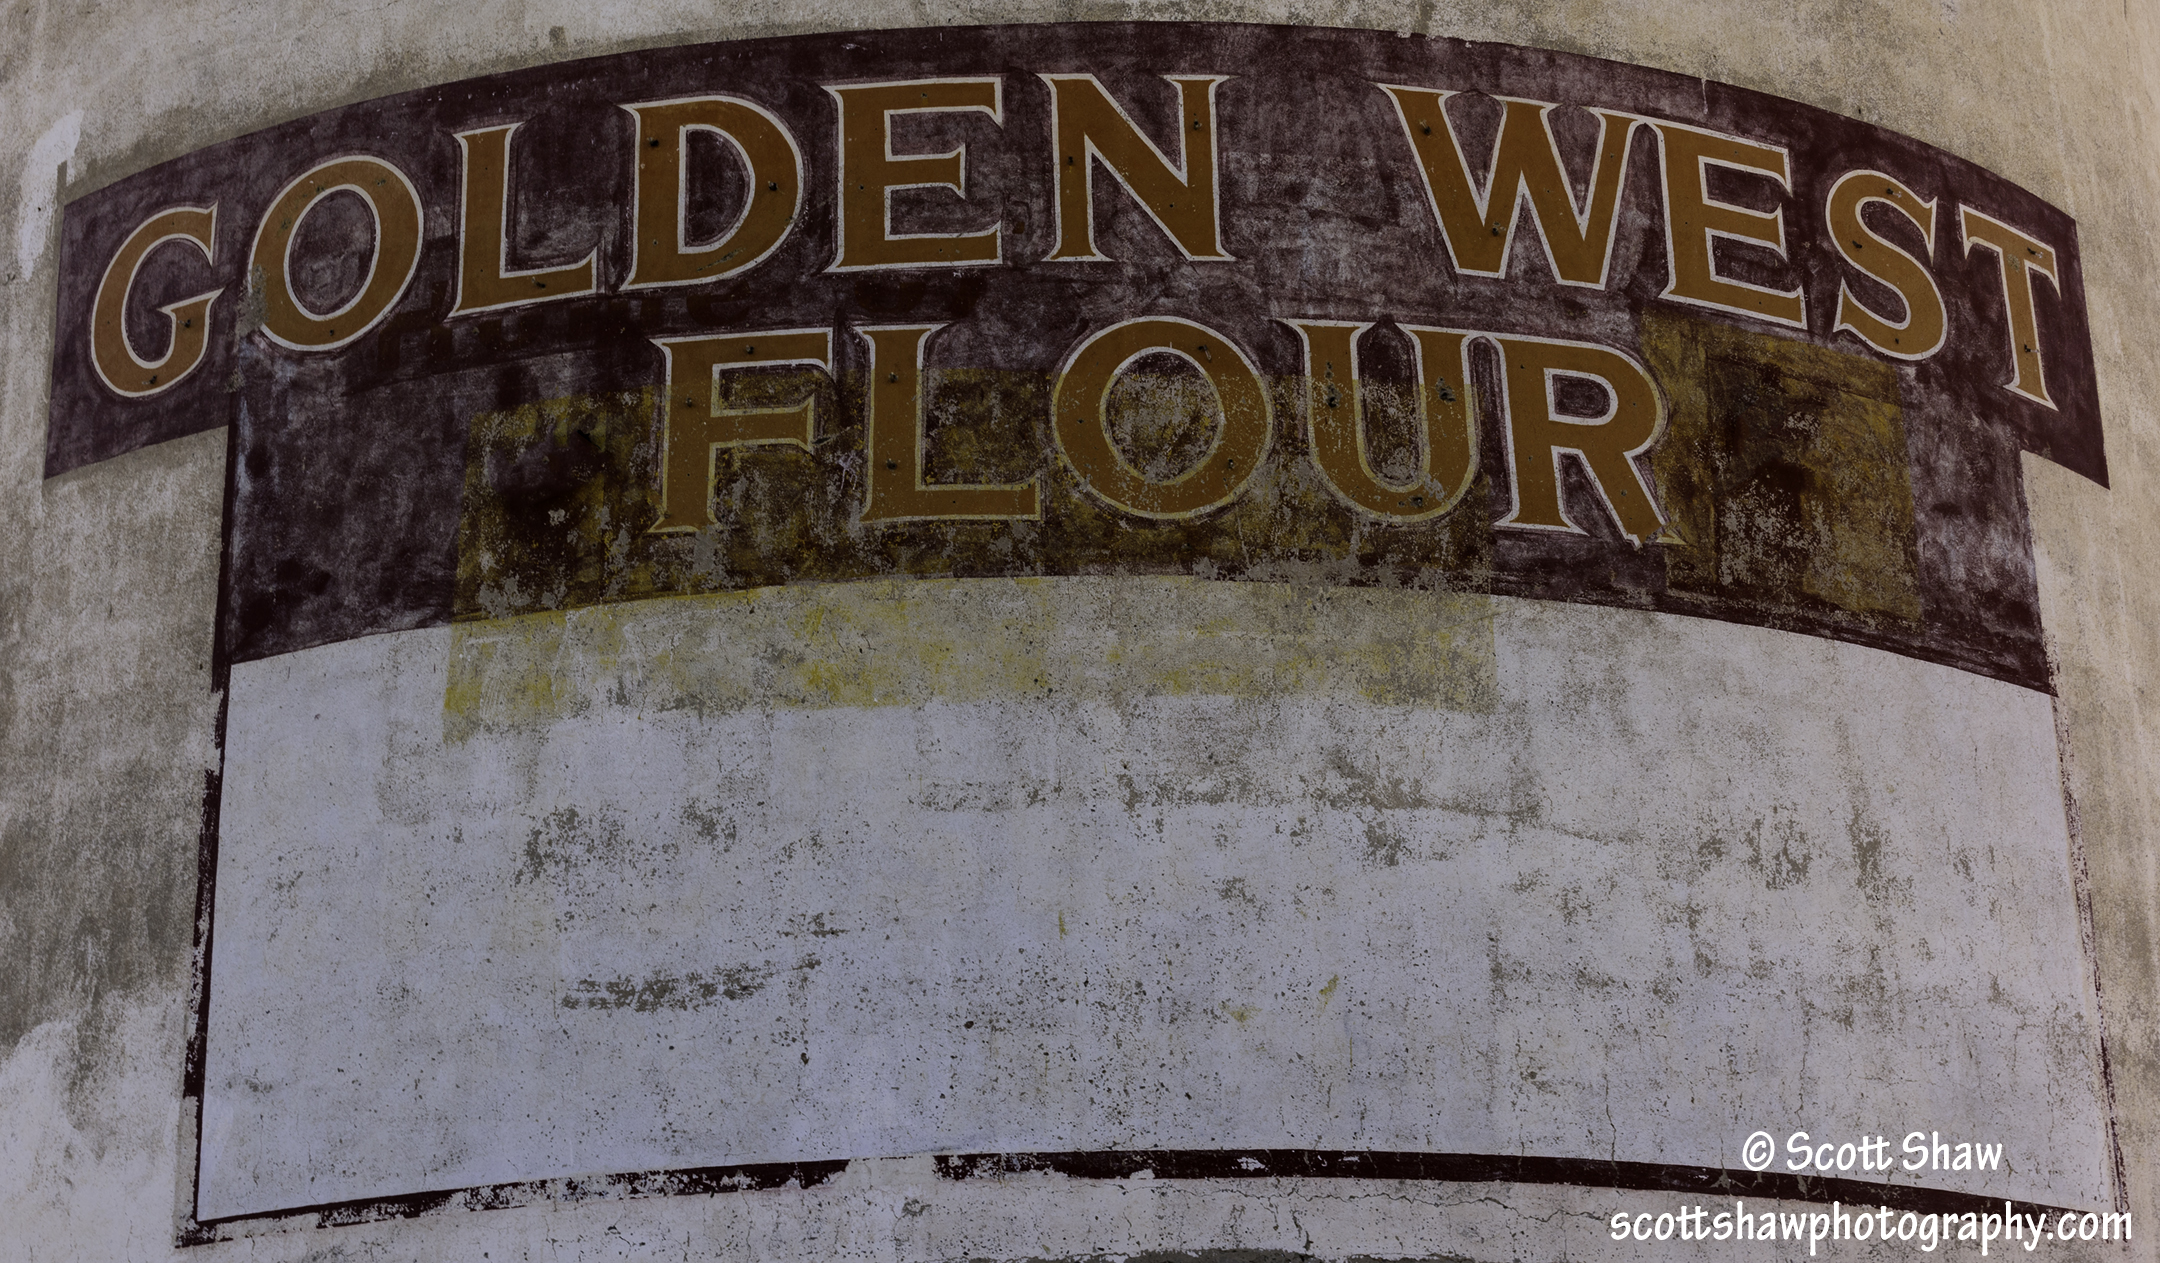 Golden West Flour